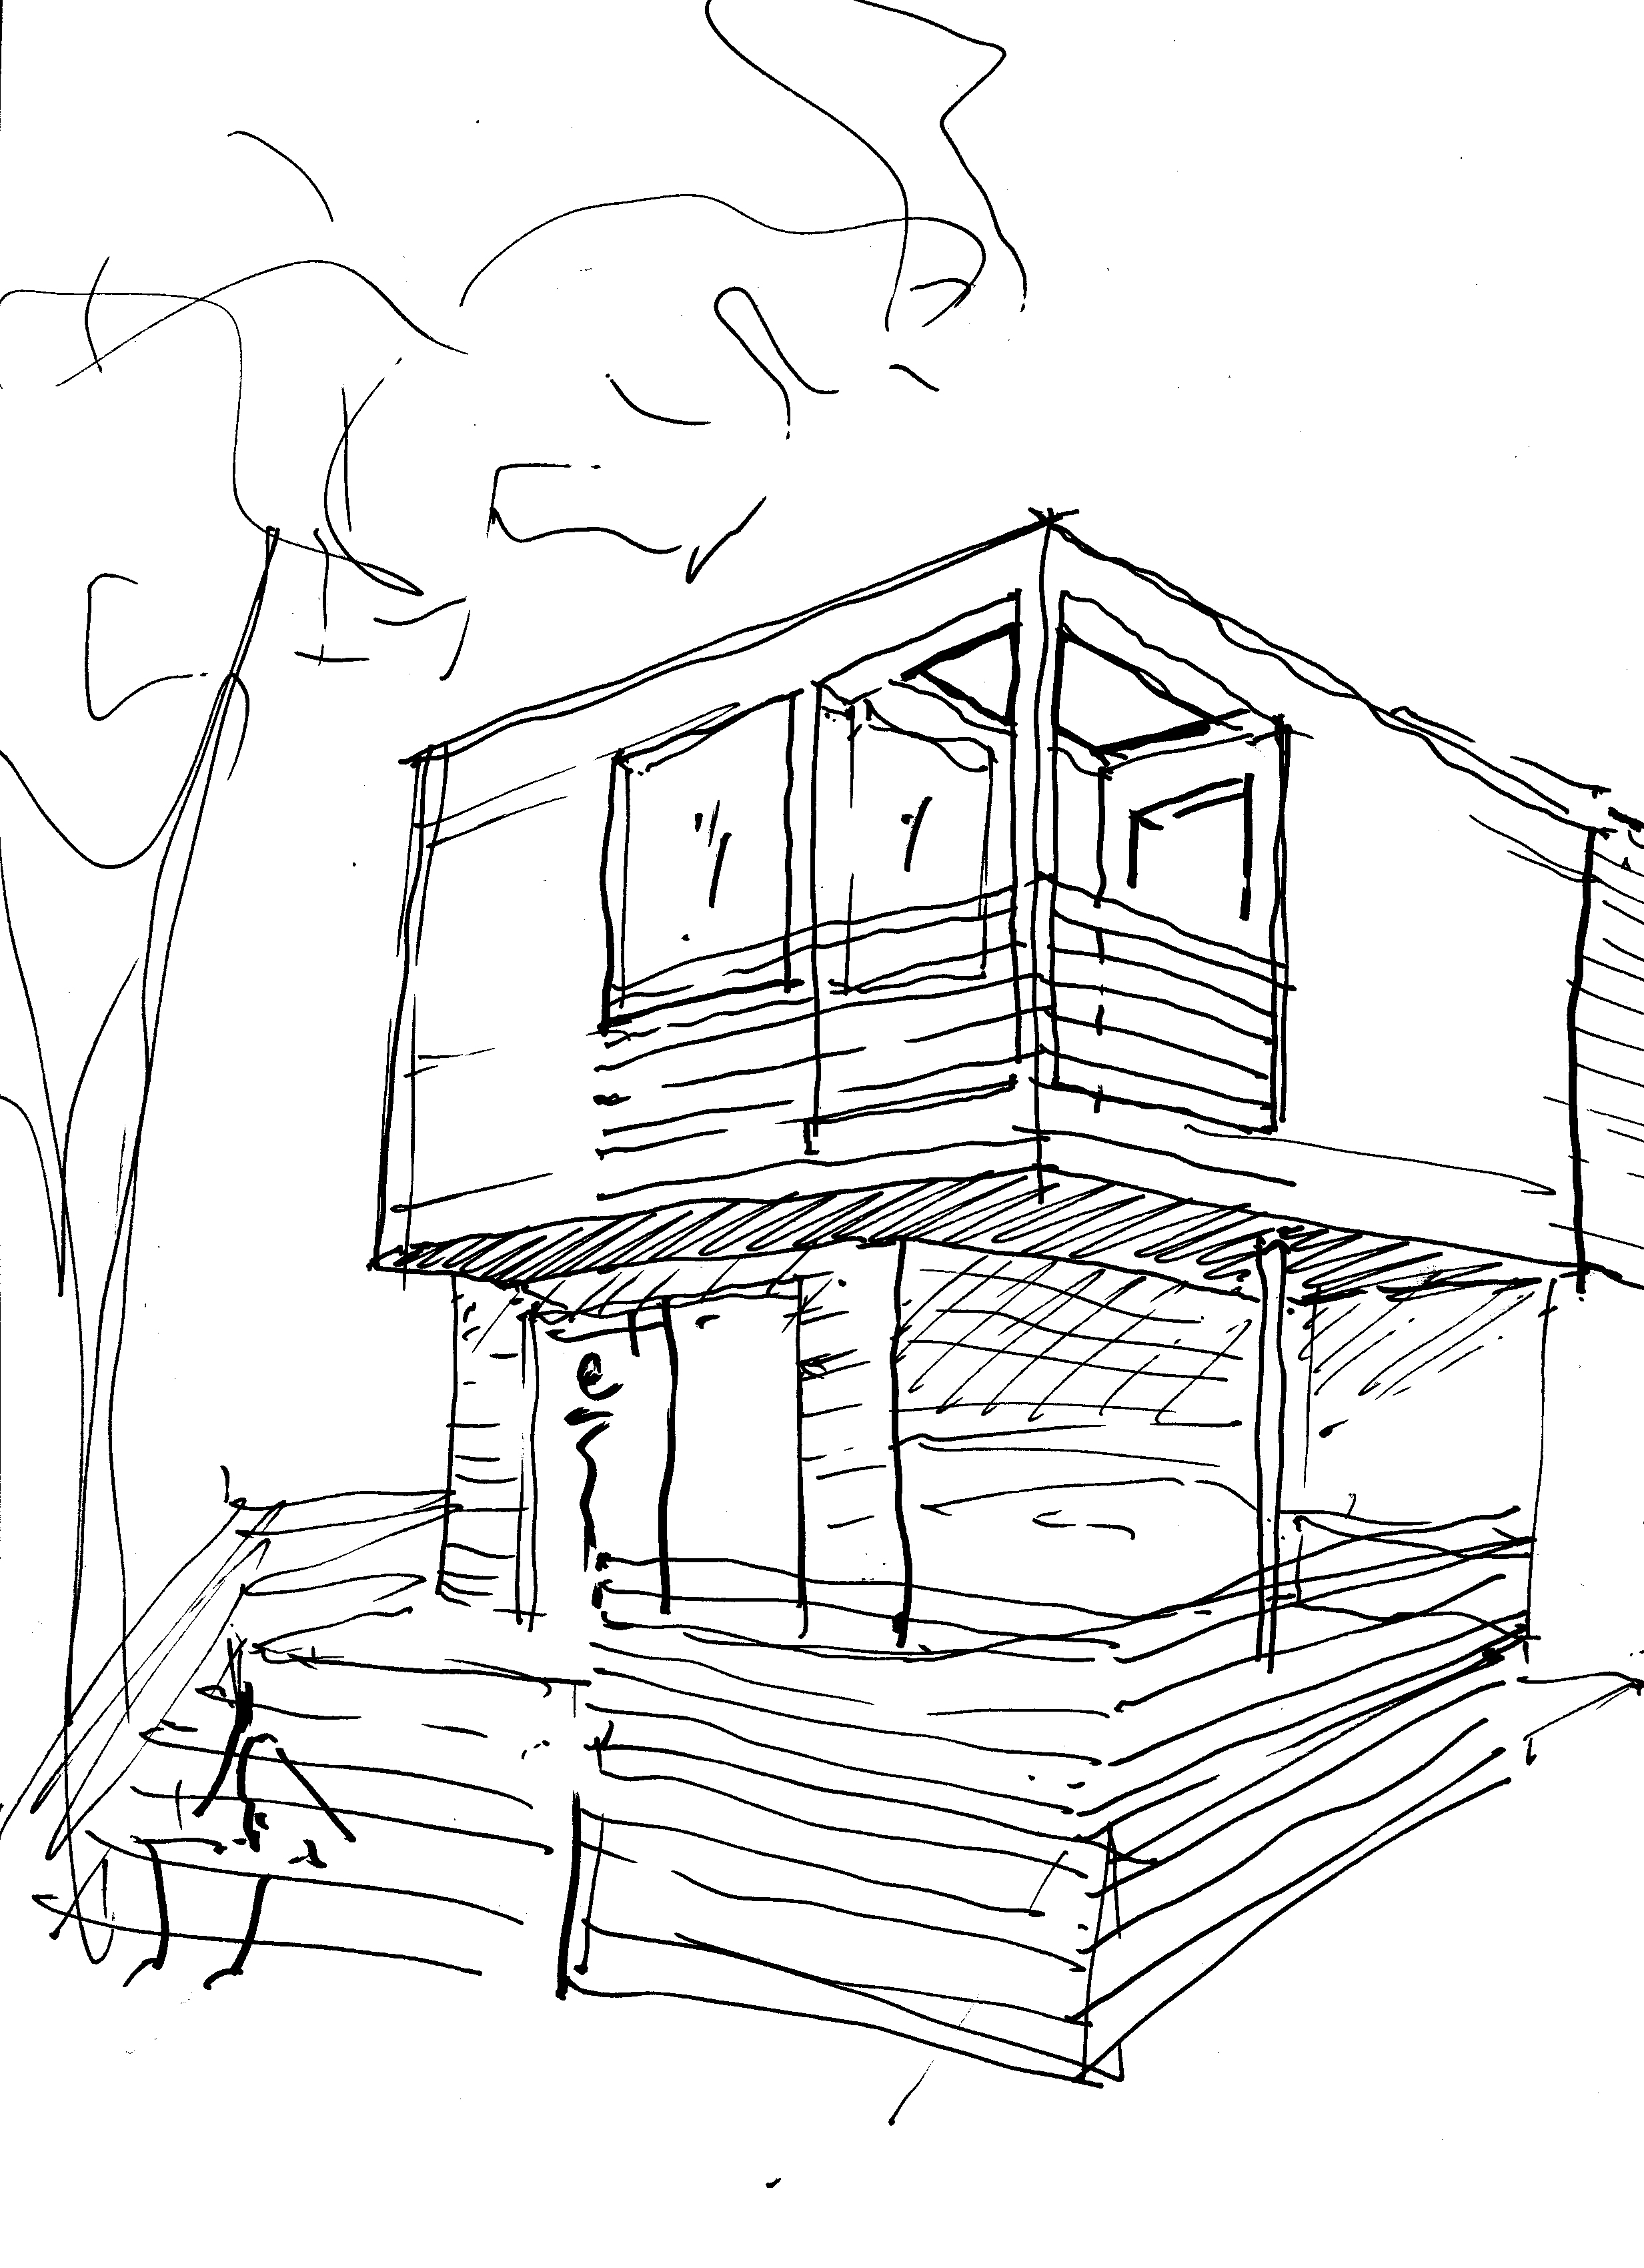 Logan_Square_Residence_Exterior_Rear_Sketch.jpg